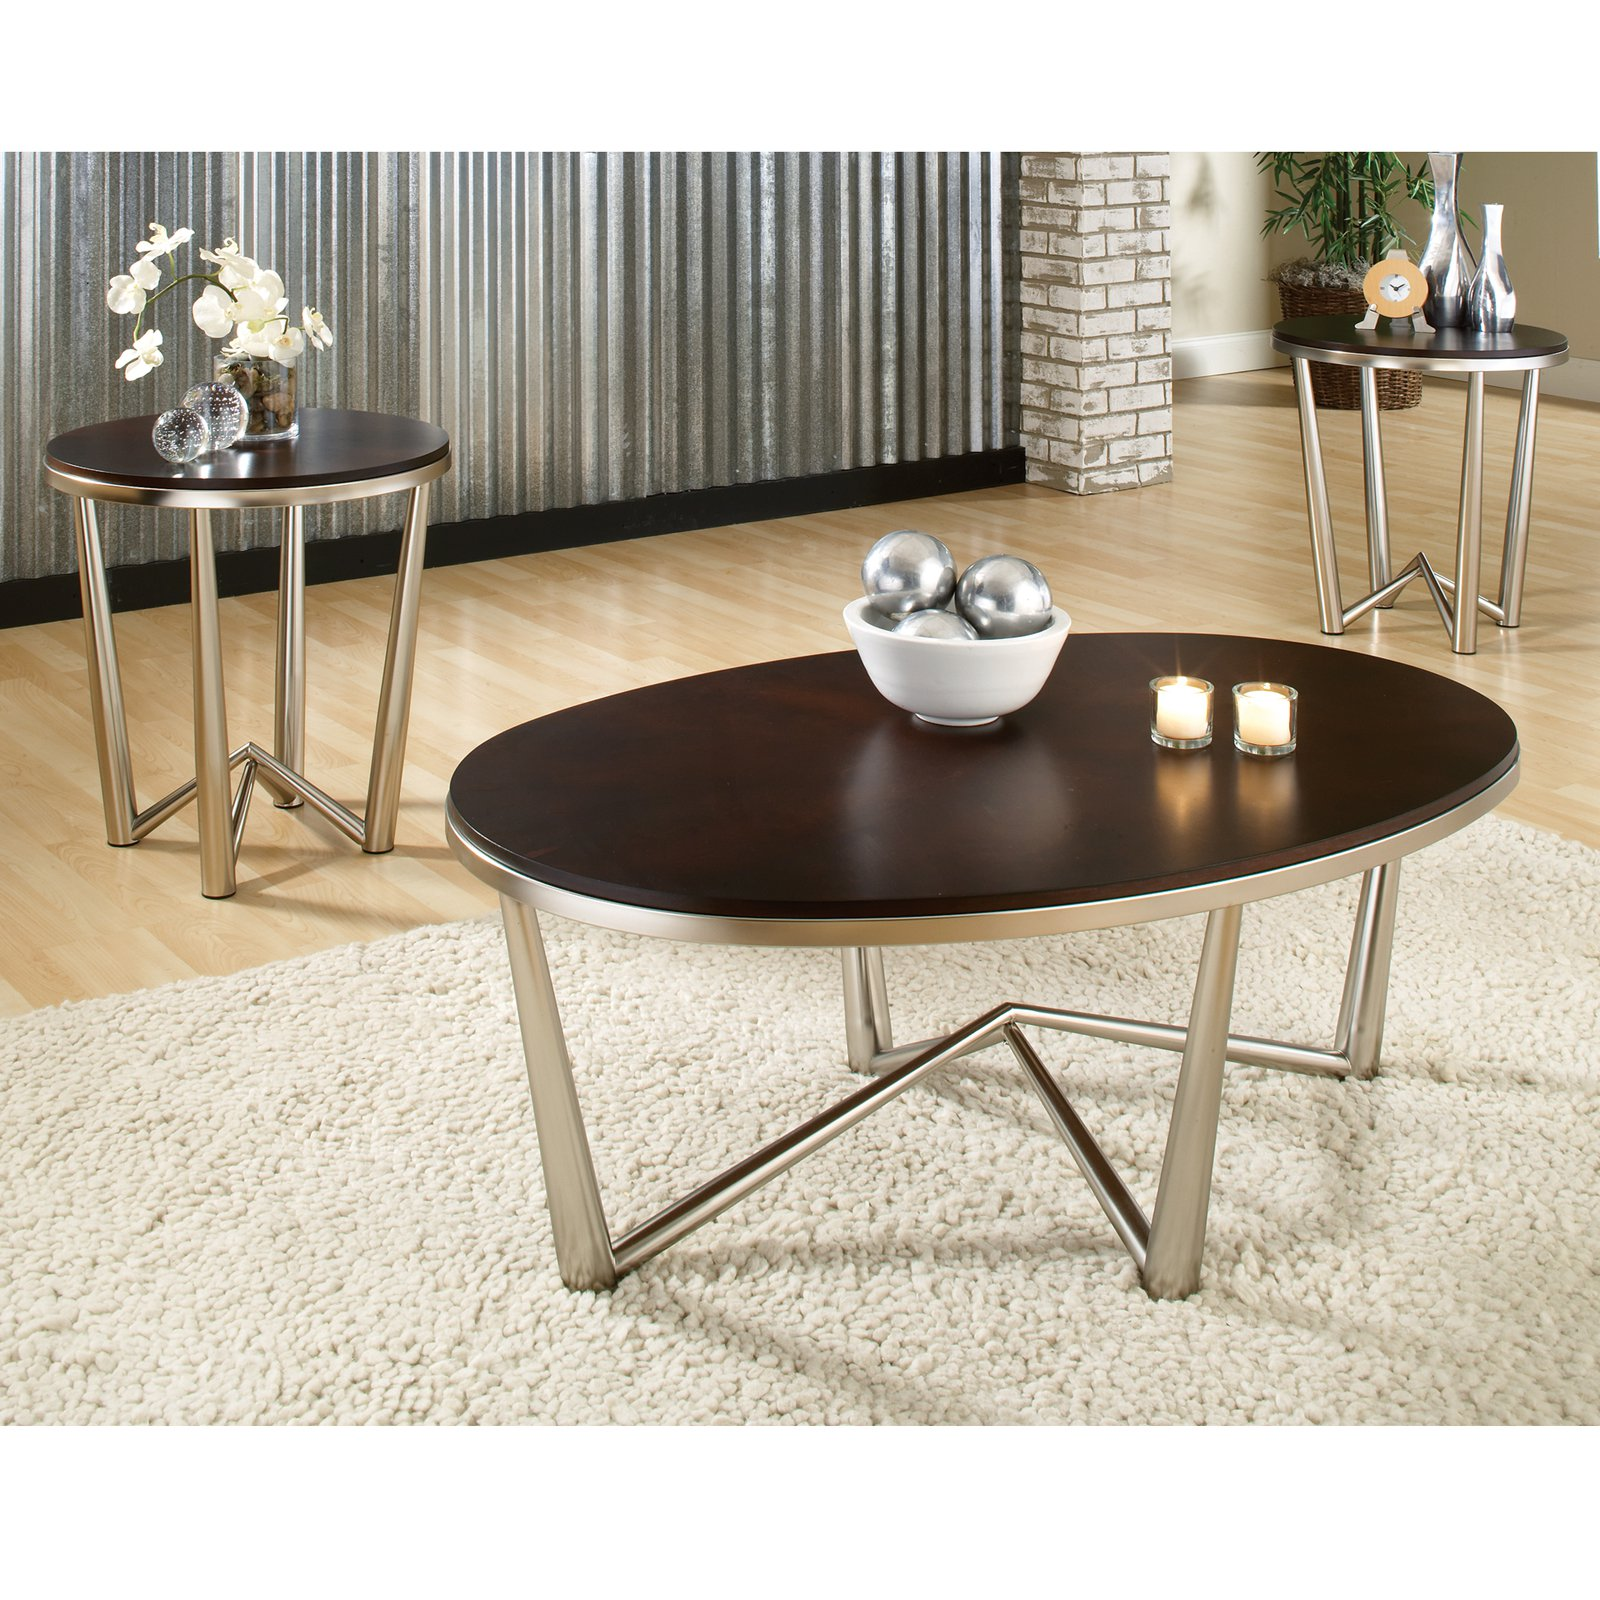 10 Best Ideas of Modern Round Coffee Table Sets